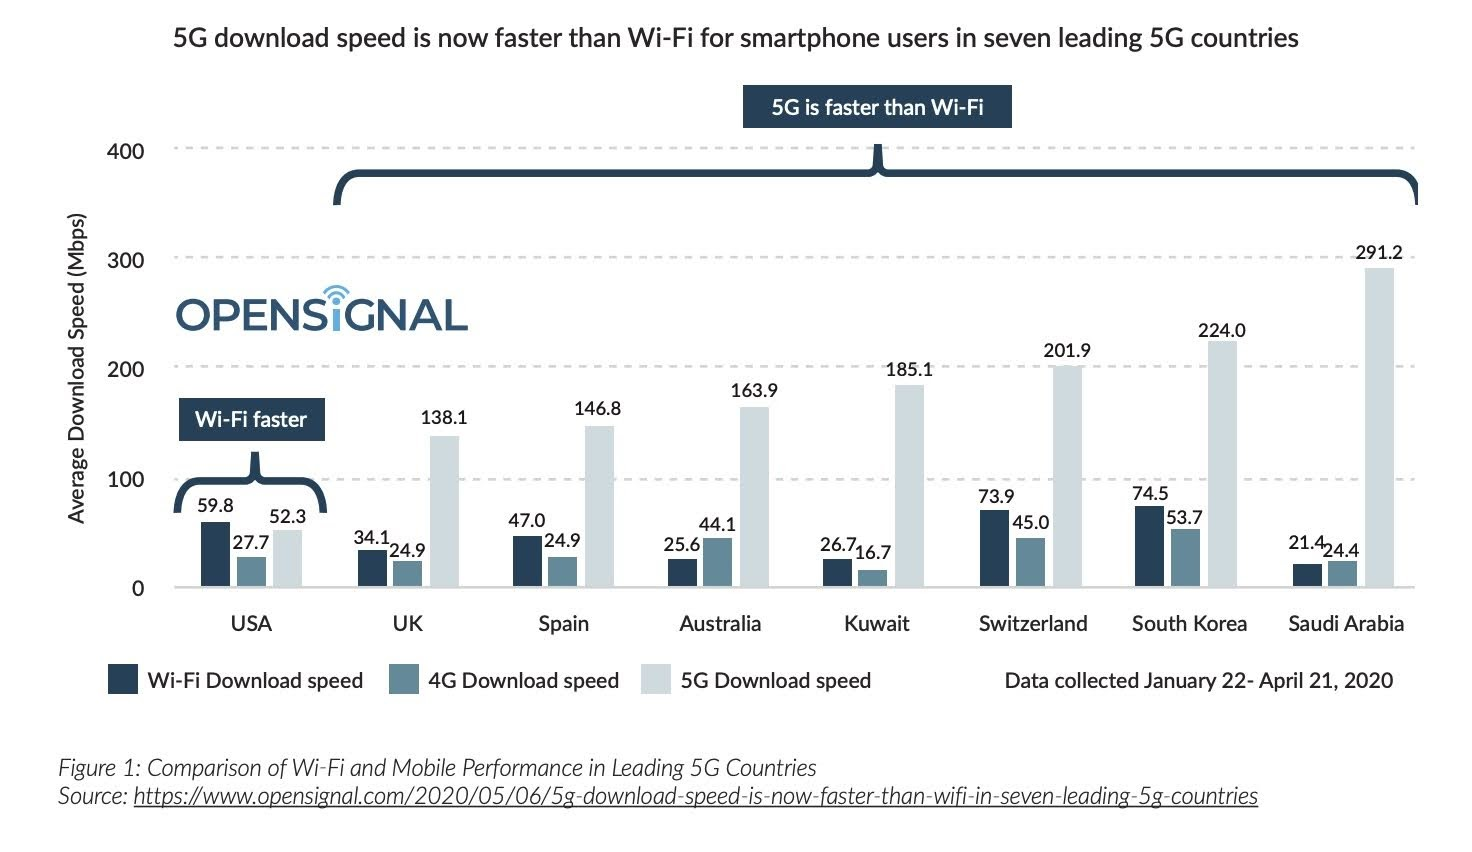 Comparison of WiFi and Mobile Performance in Leading 5G Countries